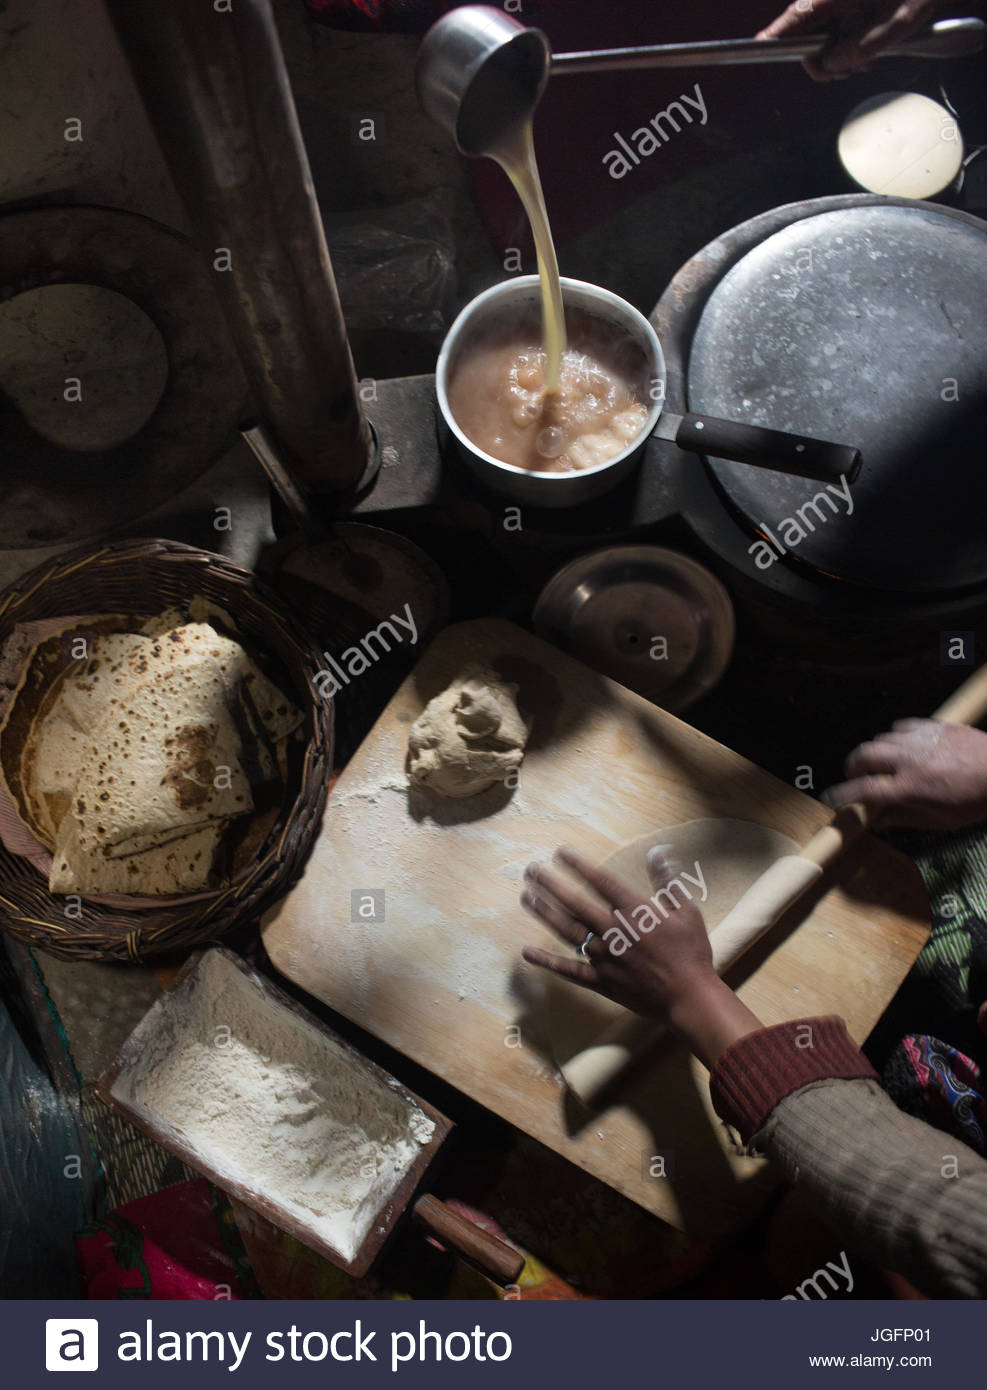 Cooking chalpindok, chapatis with dried yak milk sauce, in a home in the Hunza Region. - Stock Image